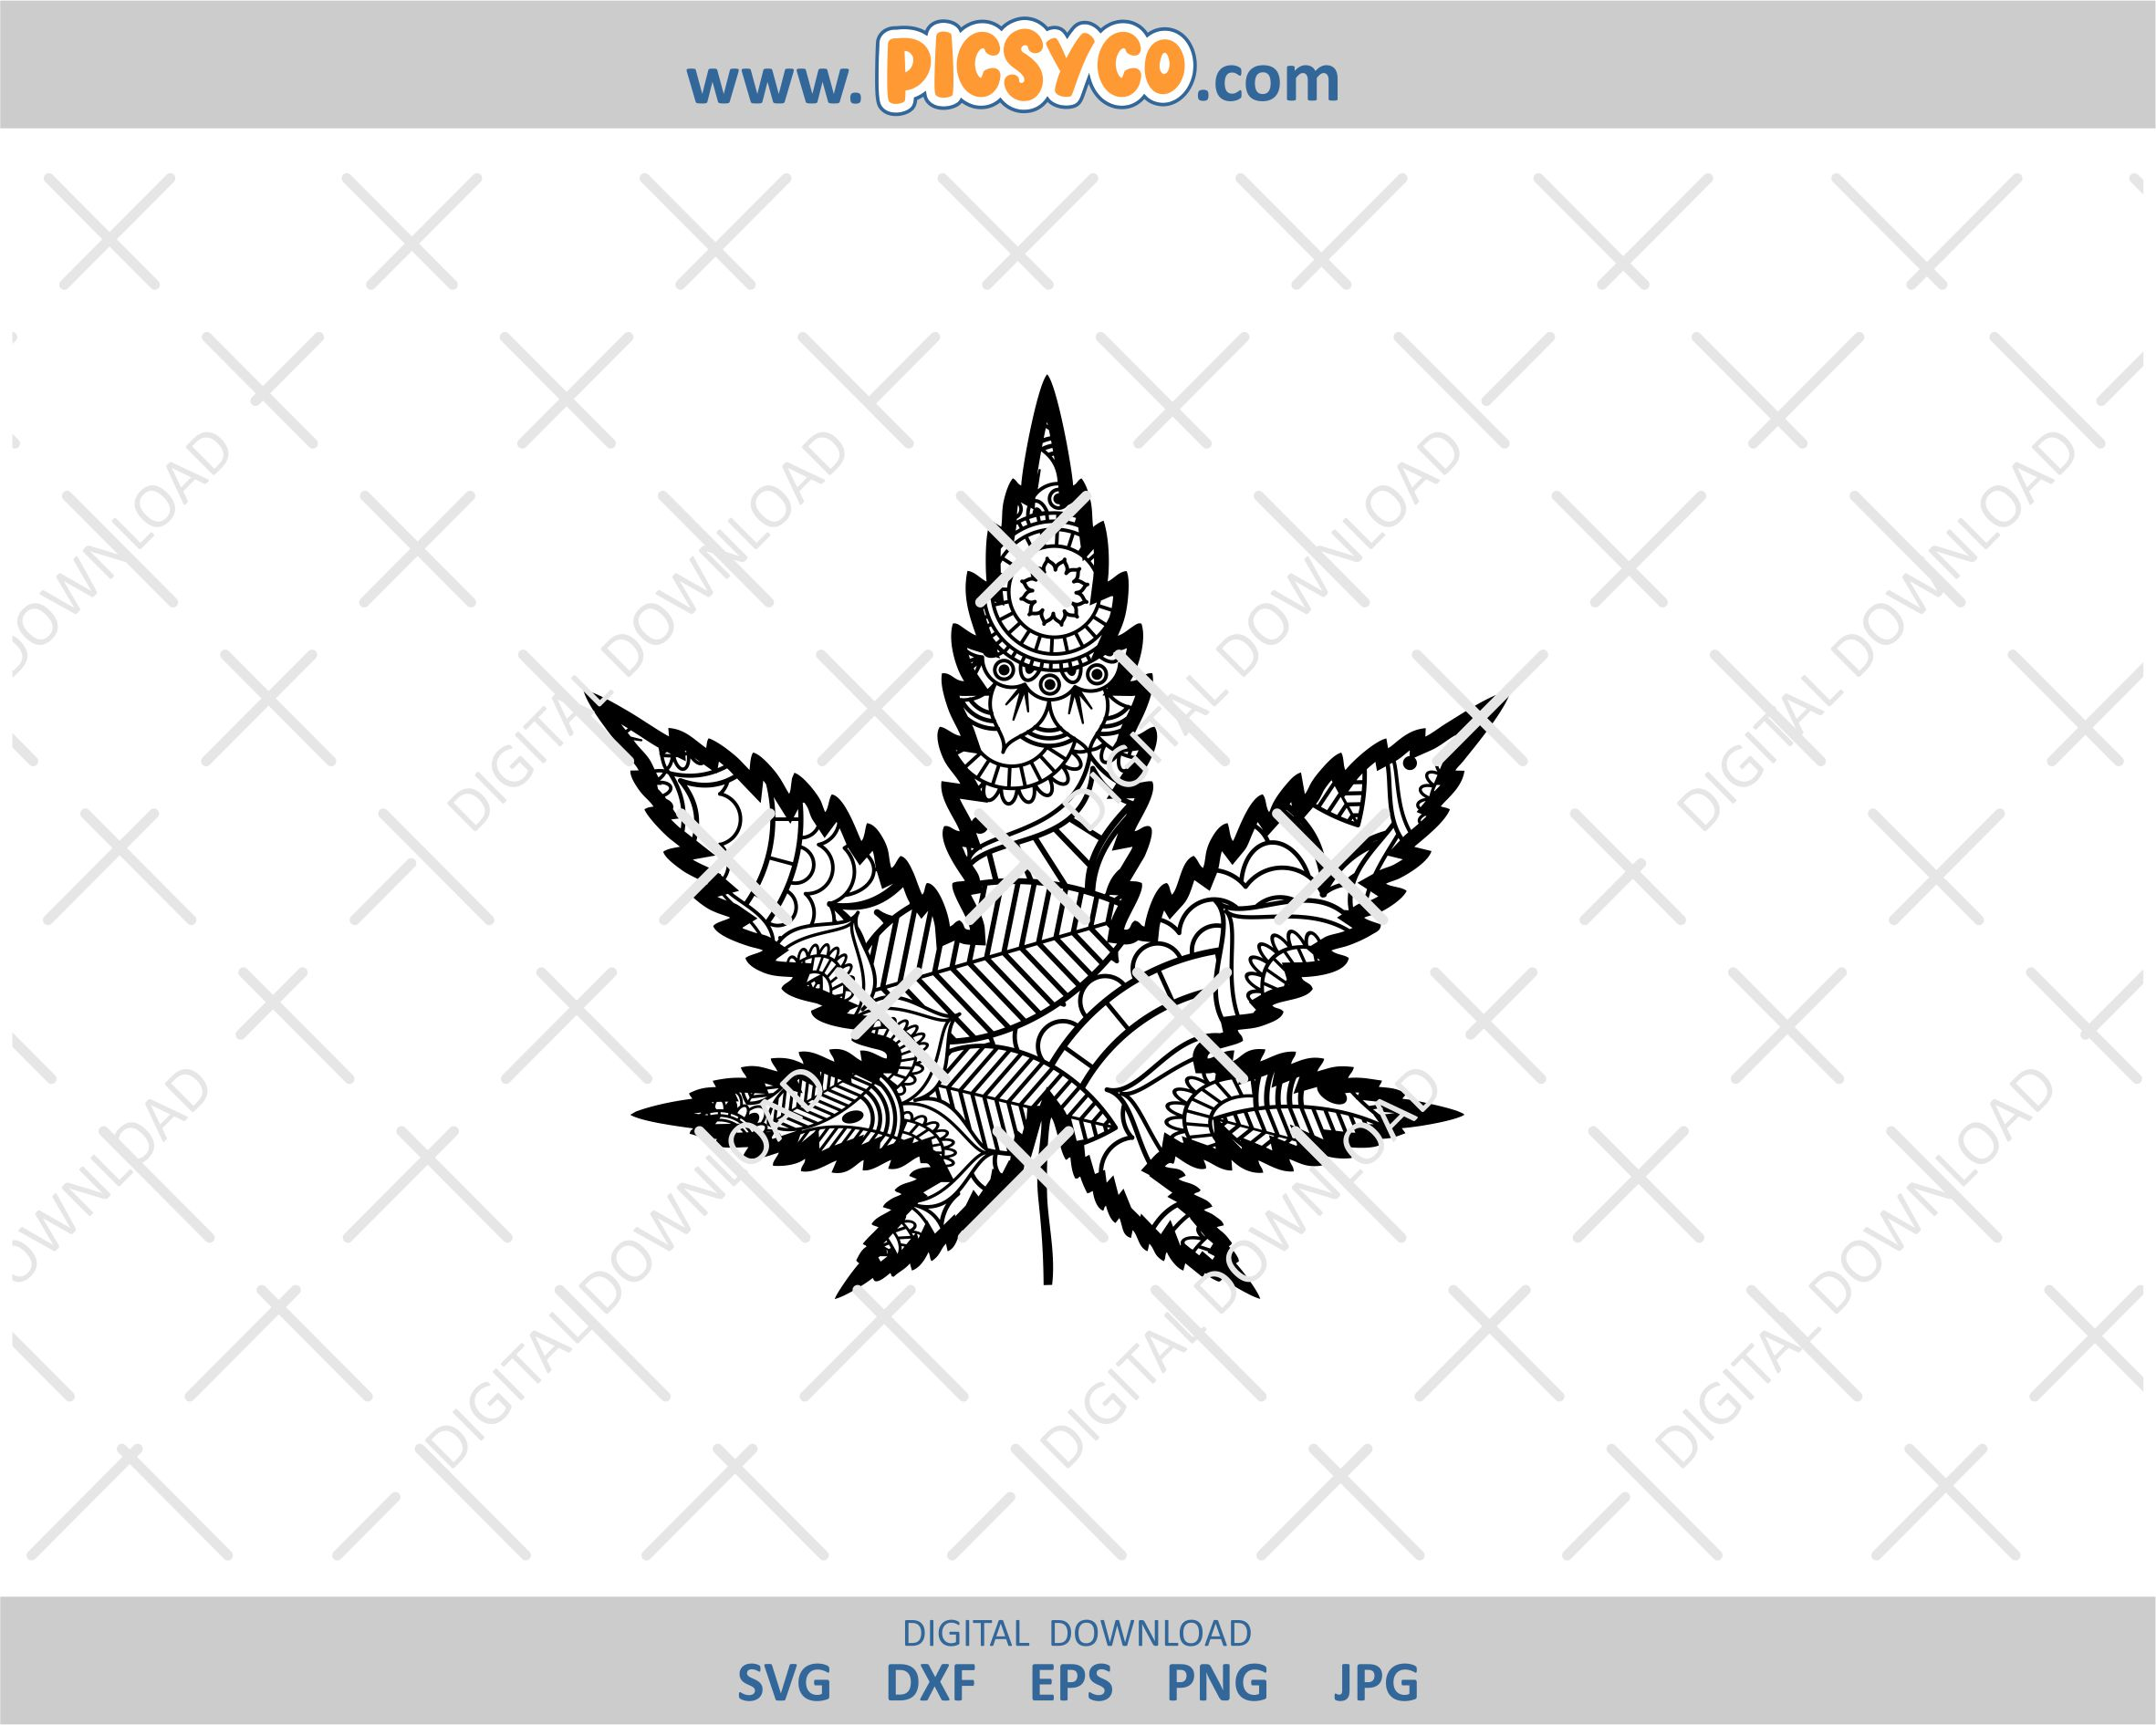 Cannabis Mandala Svg Marijuana Svg Cannabis Svg Design Svg Free Files Download Mandala Svg Zentangle Svg Mandala Files Mandala Cut Files Svg Png Picsyco